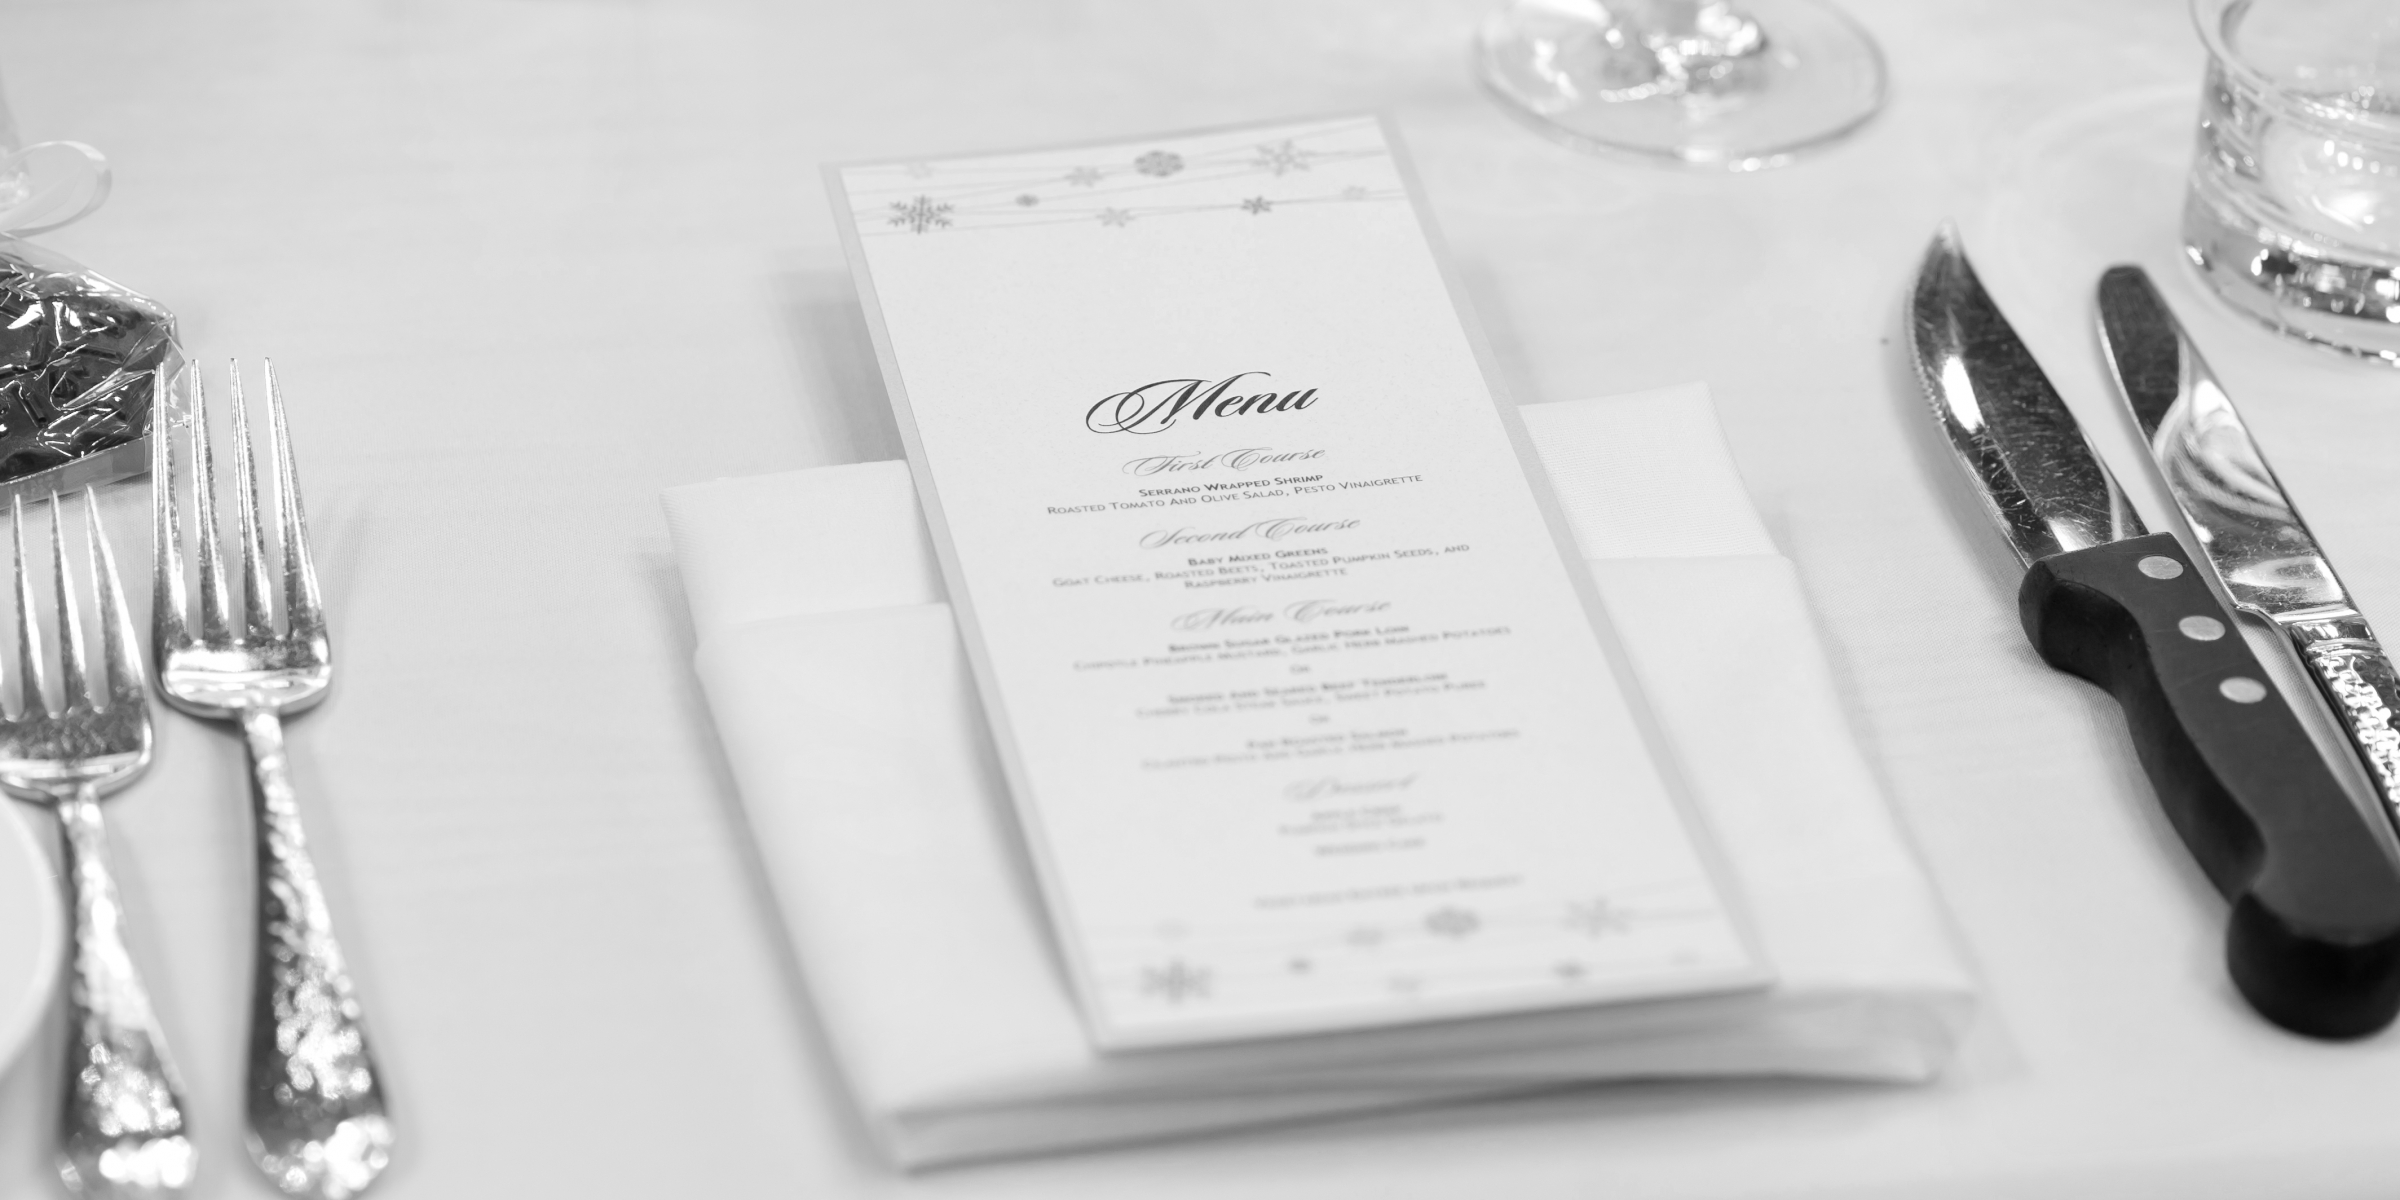 Dinner Table Setup with Menu